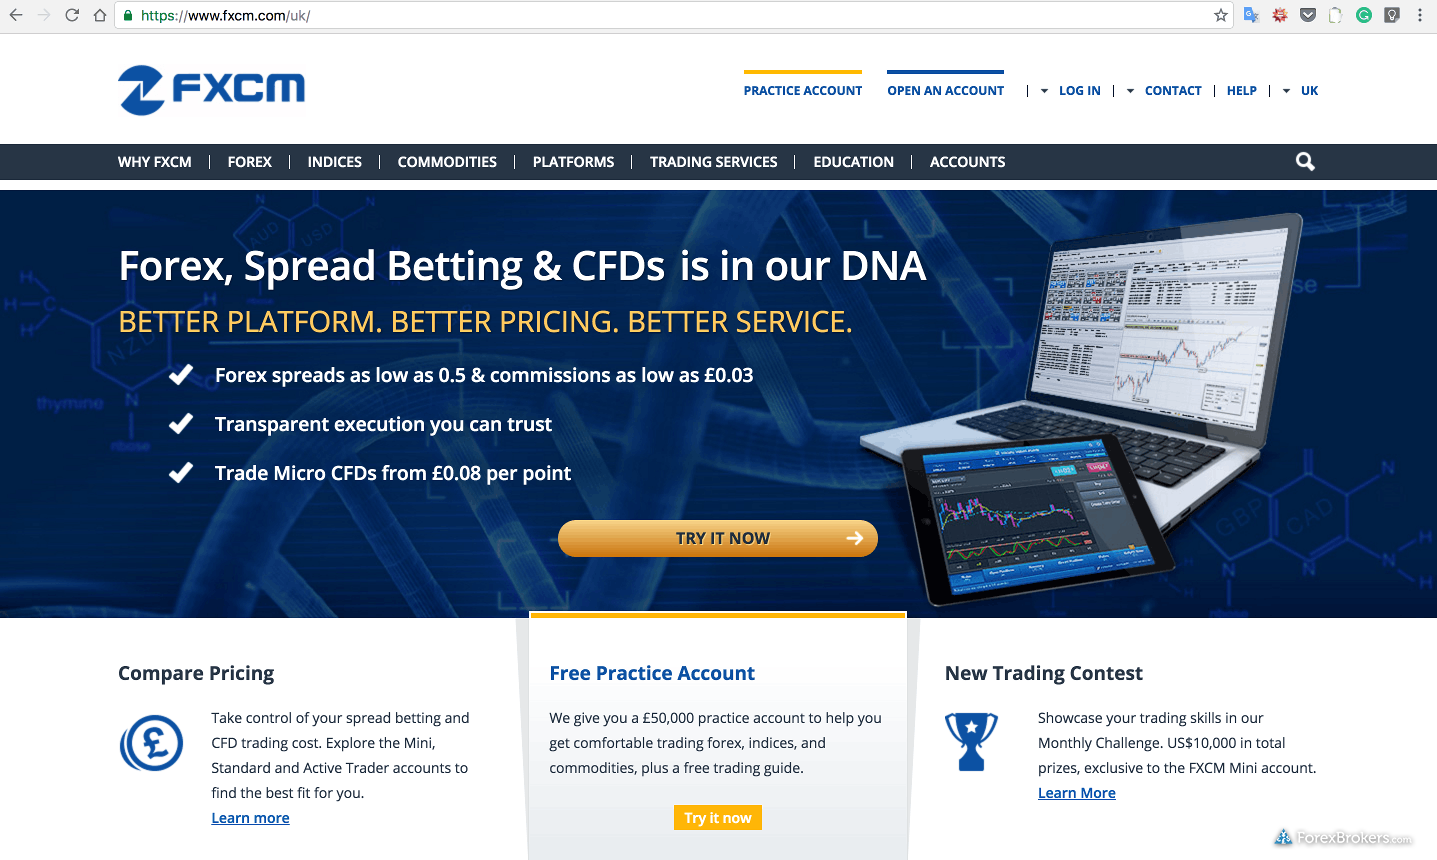 Fxcm forex account